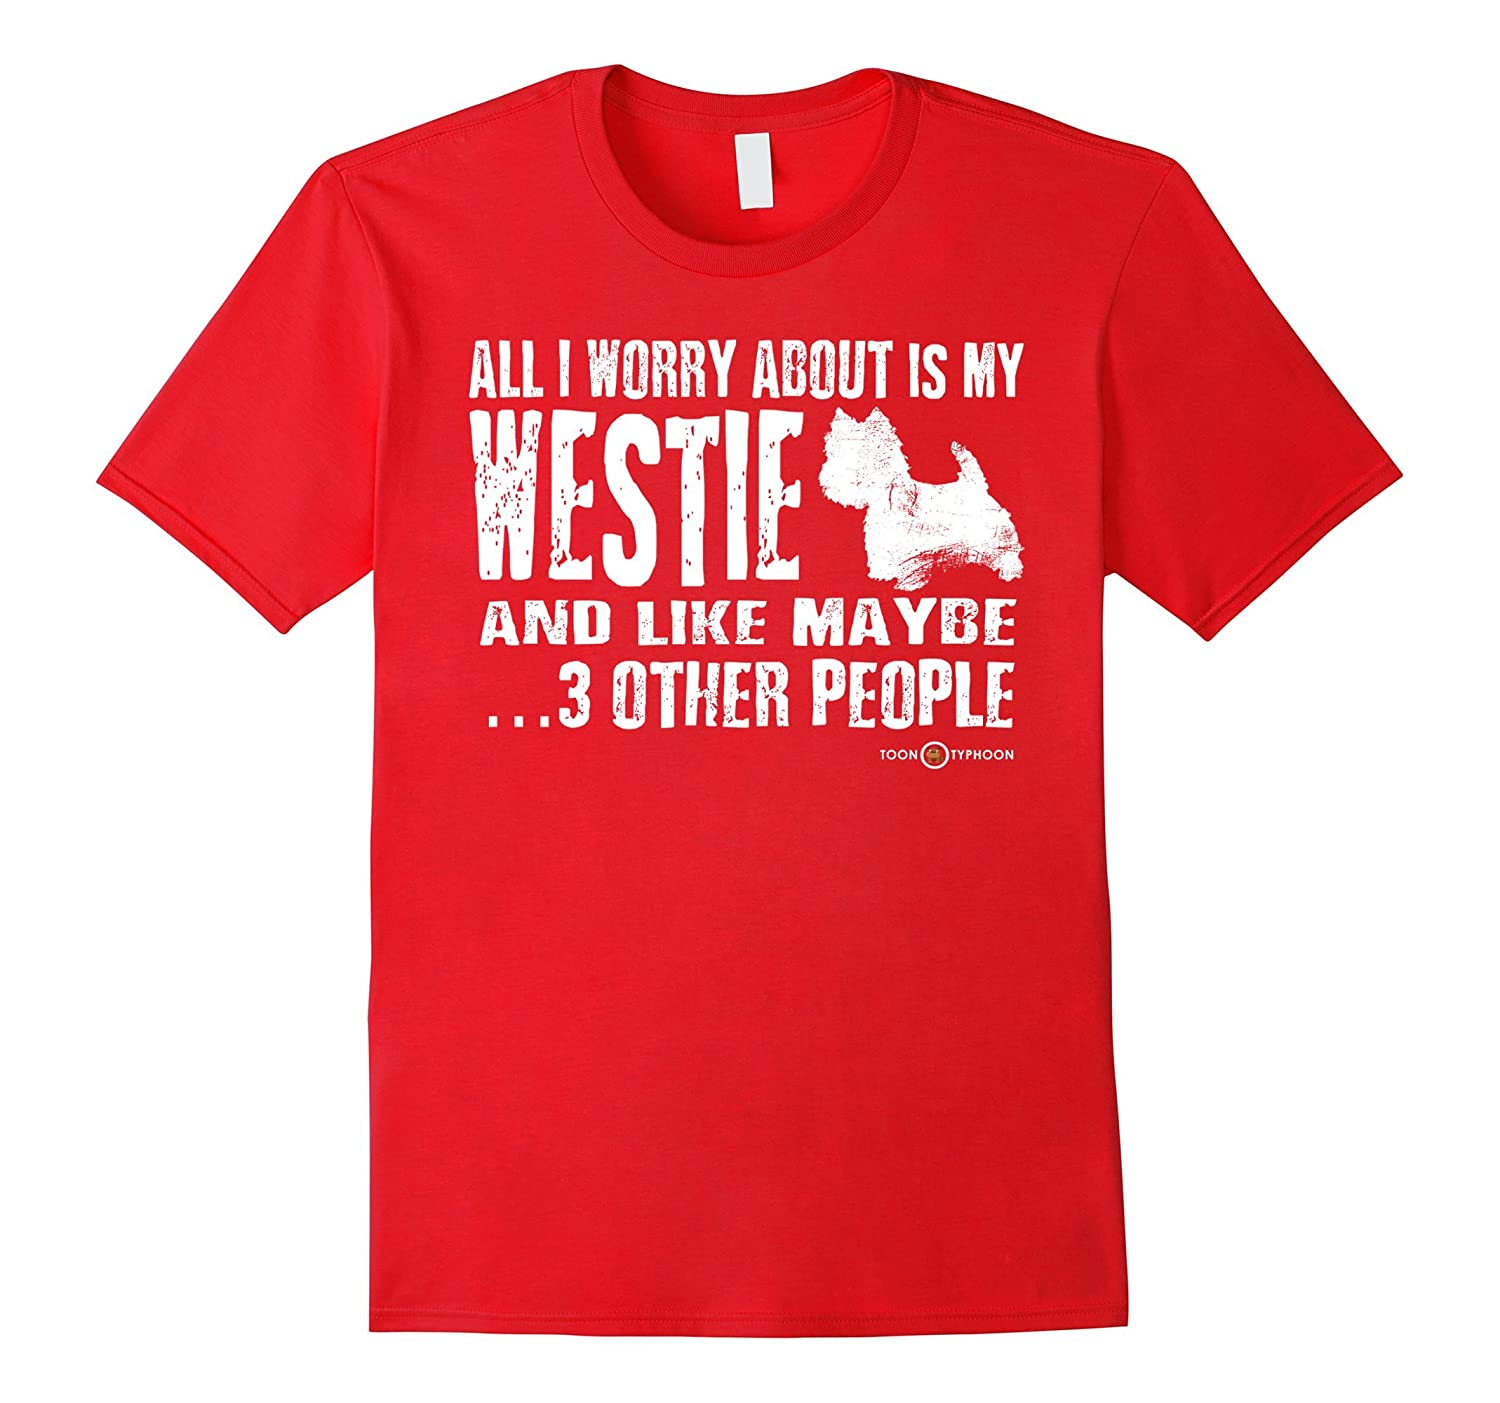 Westie Shirt  All I worry about is my Westie-PL